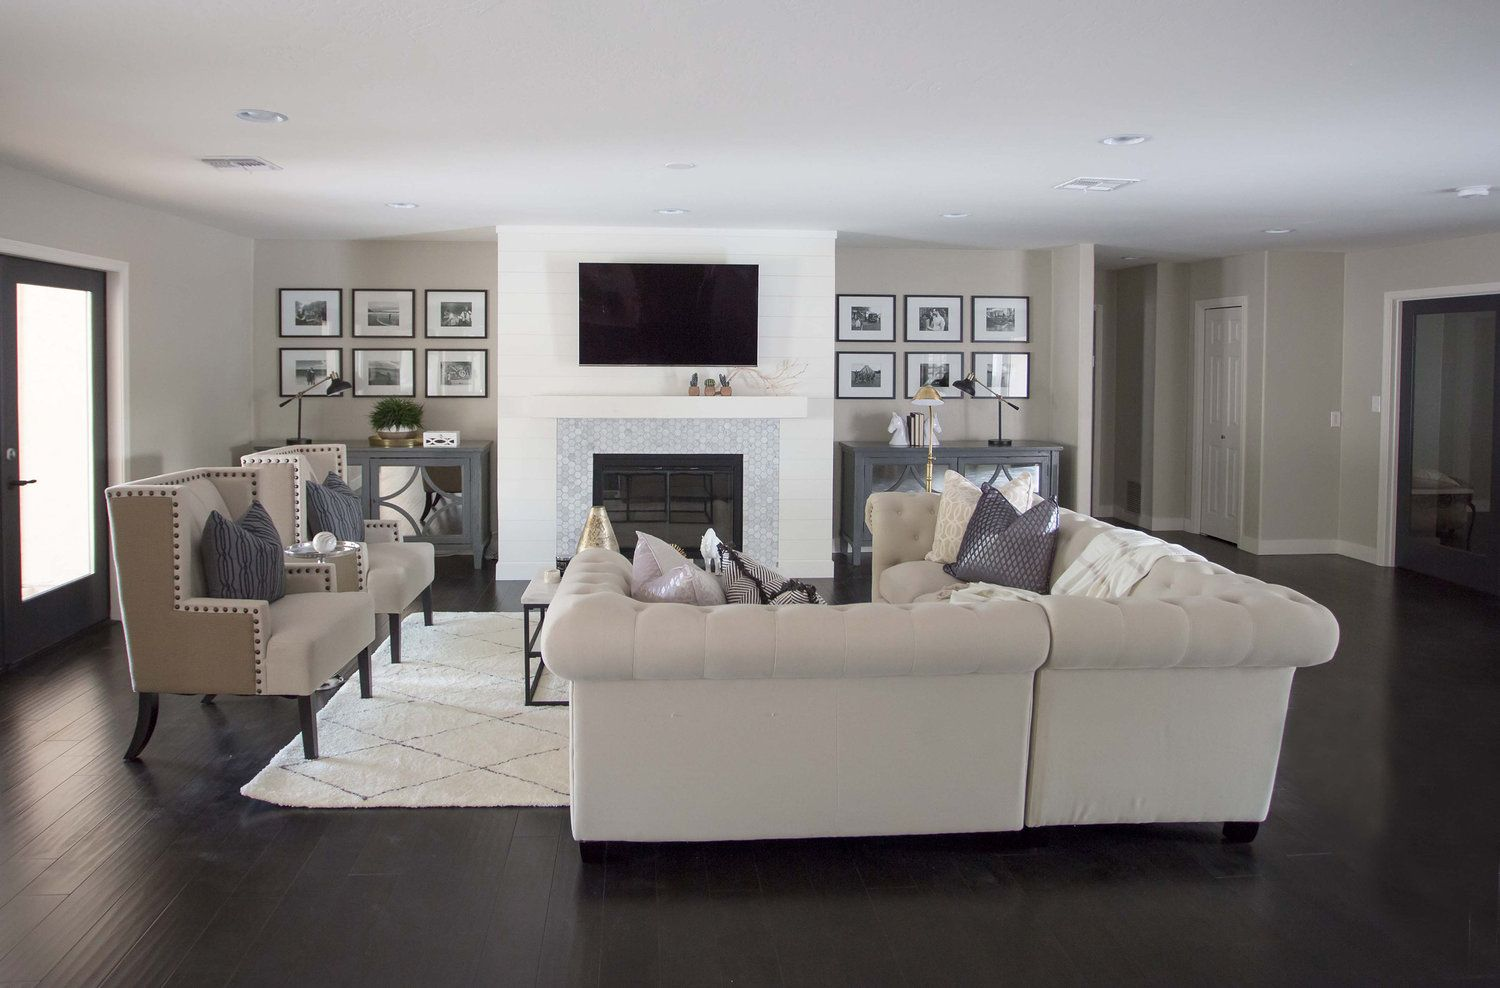 THE LifeStyled PANY Calle Del Acros Project Dark hardwoods